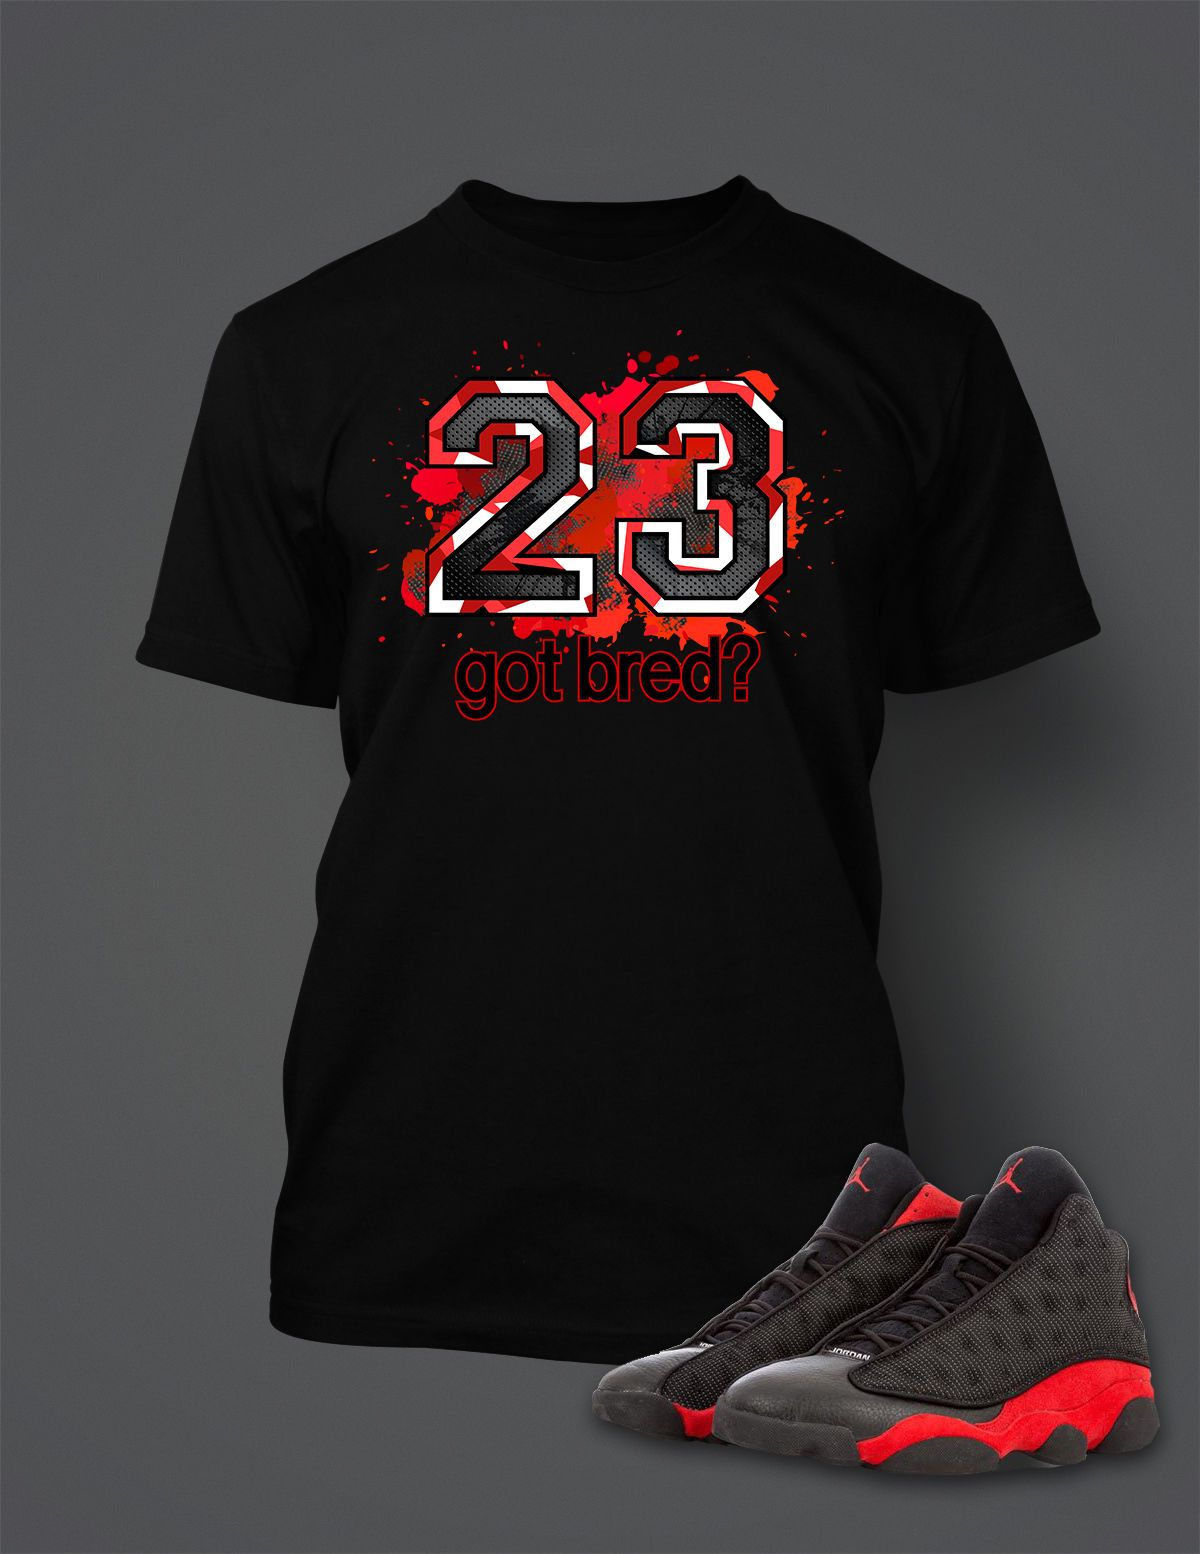 37b4b548498f40 23 Got Bred Tee Shirt to Match Retro Air Jordan 13 Shoe Mens Graphic T Shirt